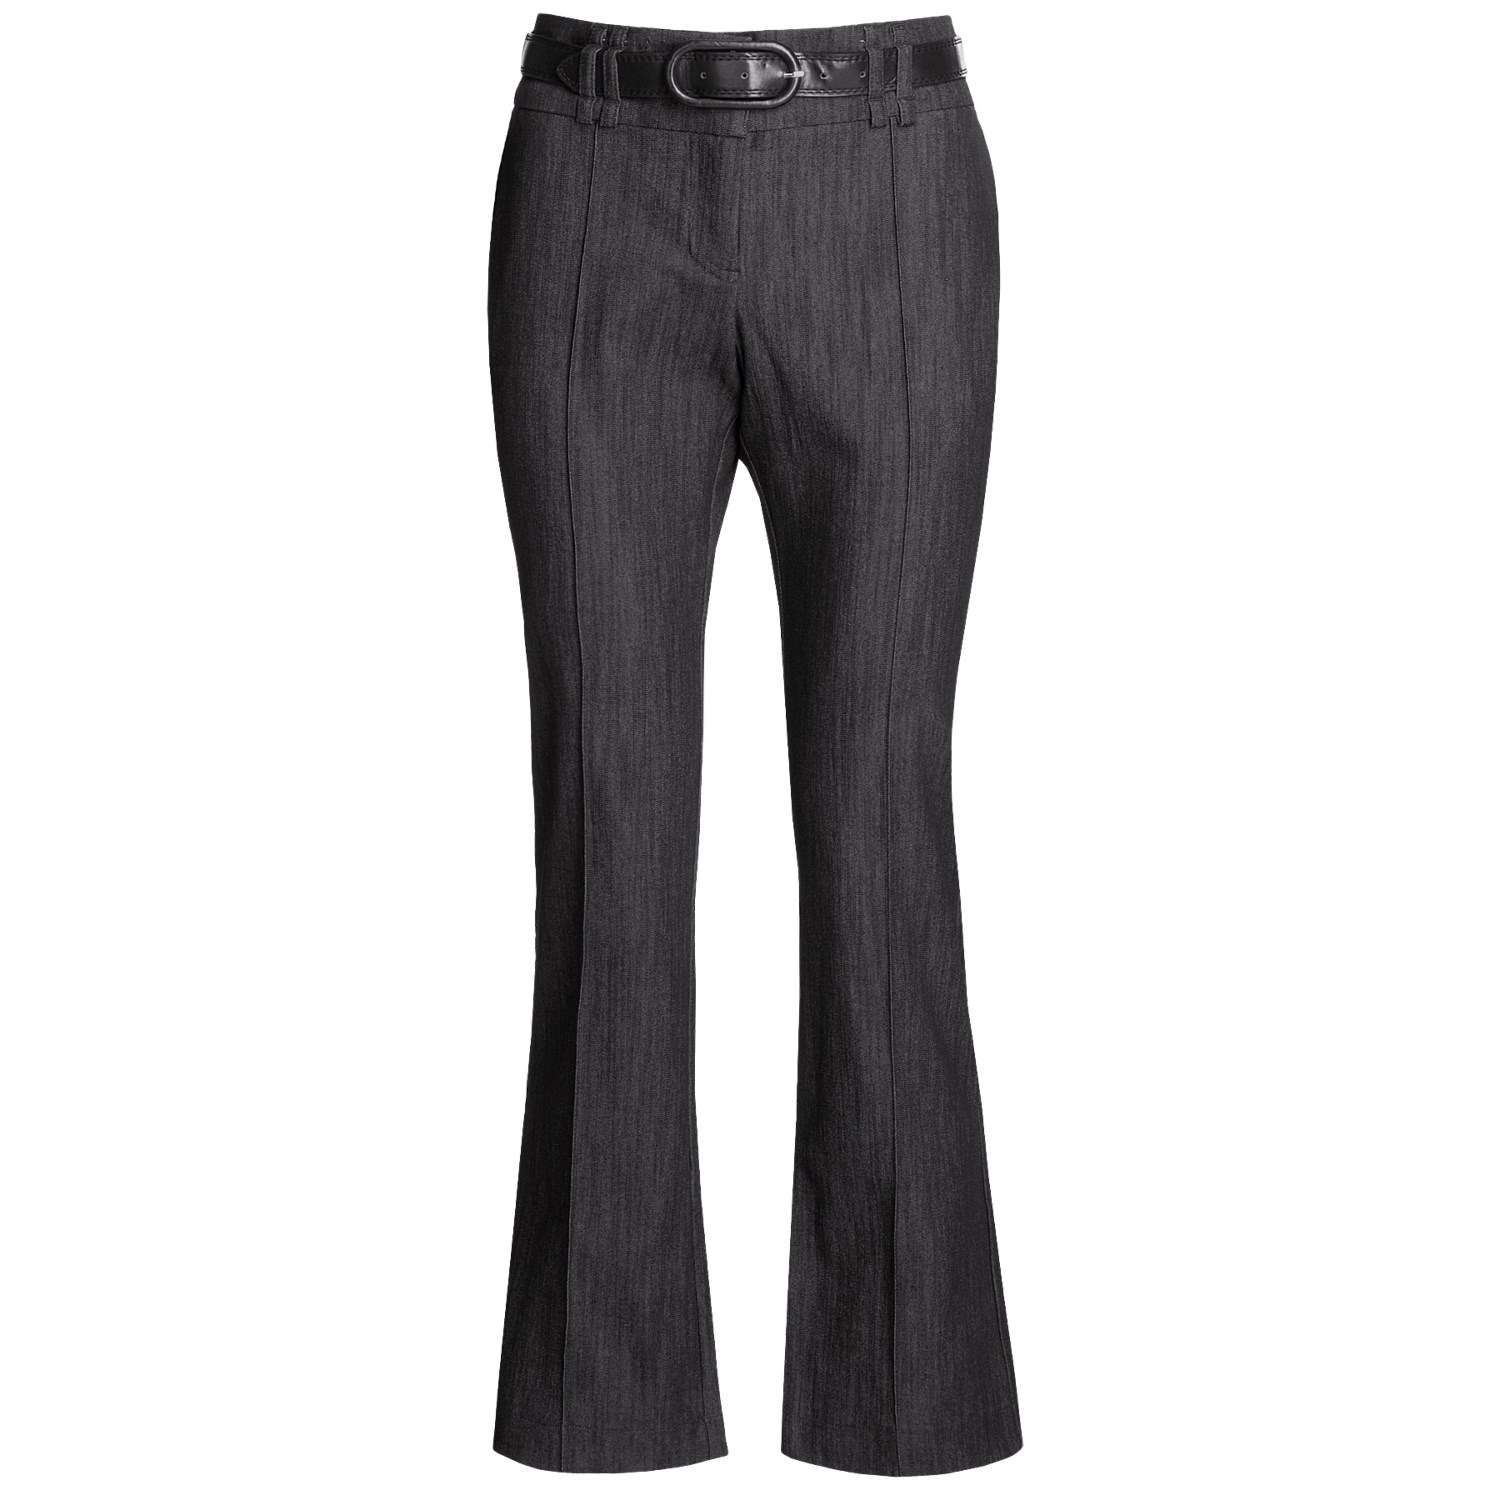 Casual Dress Pants For Women Casual Dress Pants Louis